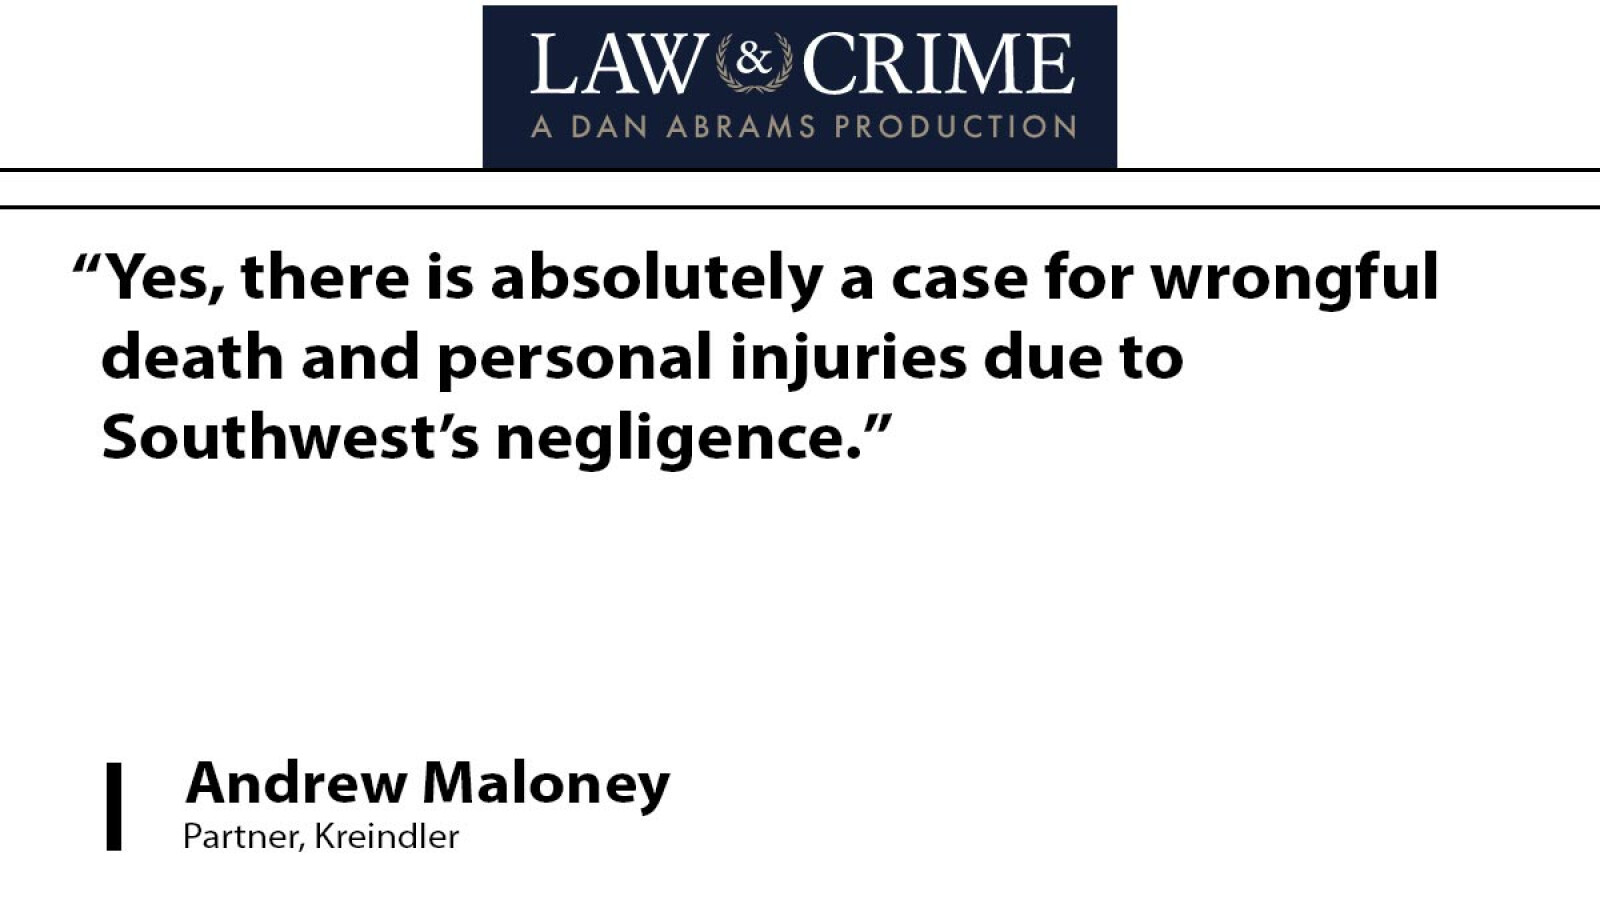 Wrongful death charge against Southwest is justified, says attorney Andrew Maloney